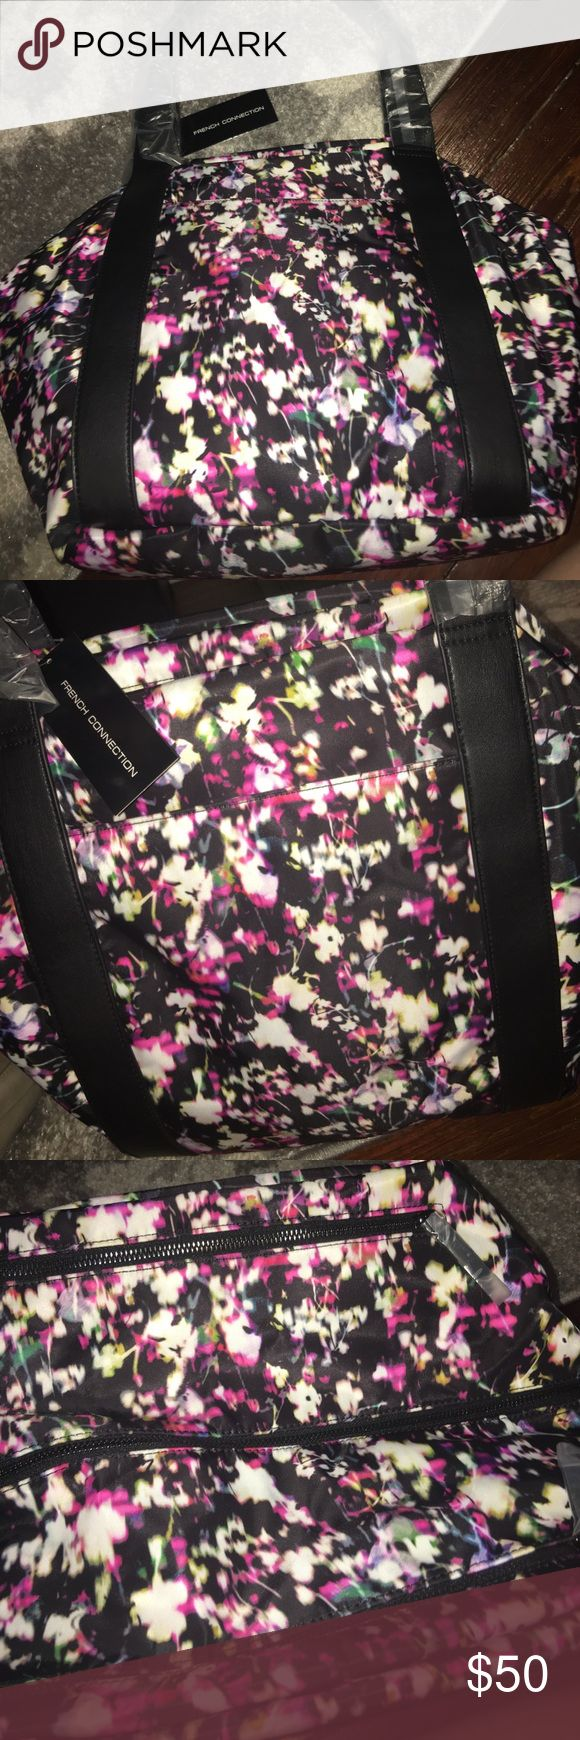 "Gorgeous tote, super roomy! Gorgeous midnight blossom print, NWT, 16"" wide and about 12"" deep. Tons of storage room in this tote, could be used for school, work, the gym, as a diaper bag or more! French Connection Bags Totes"